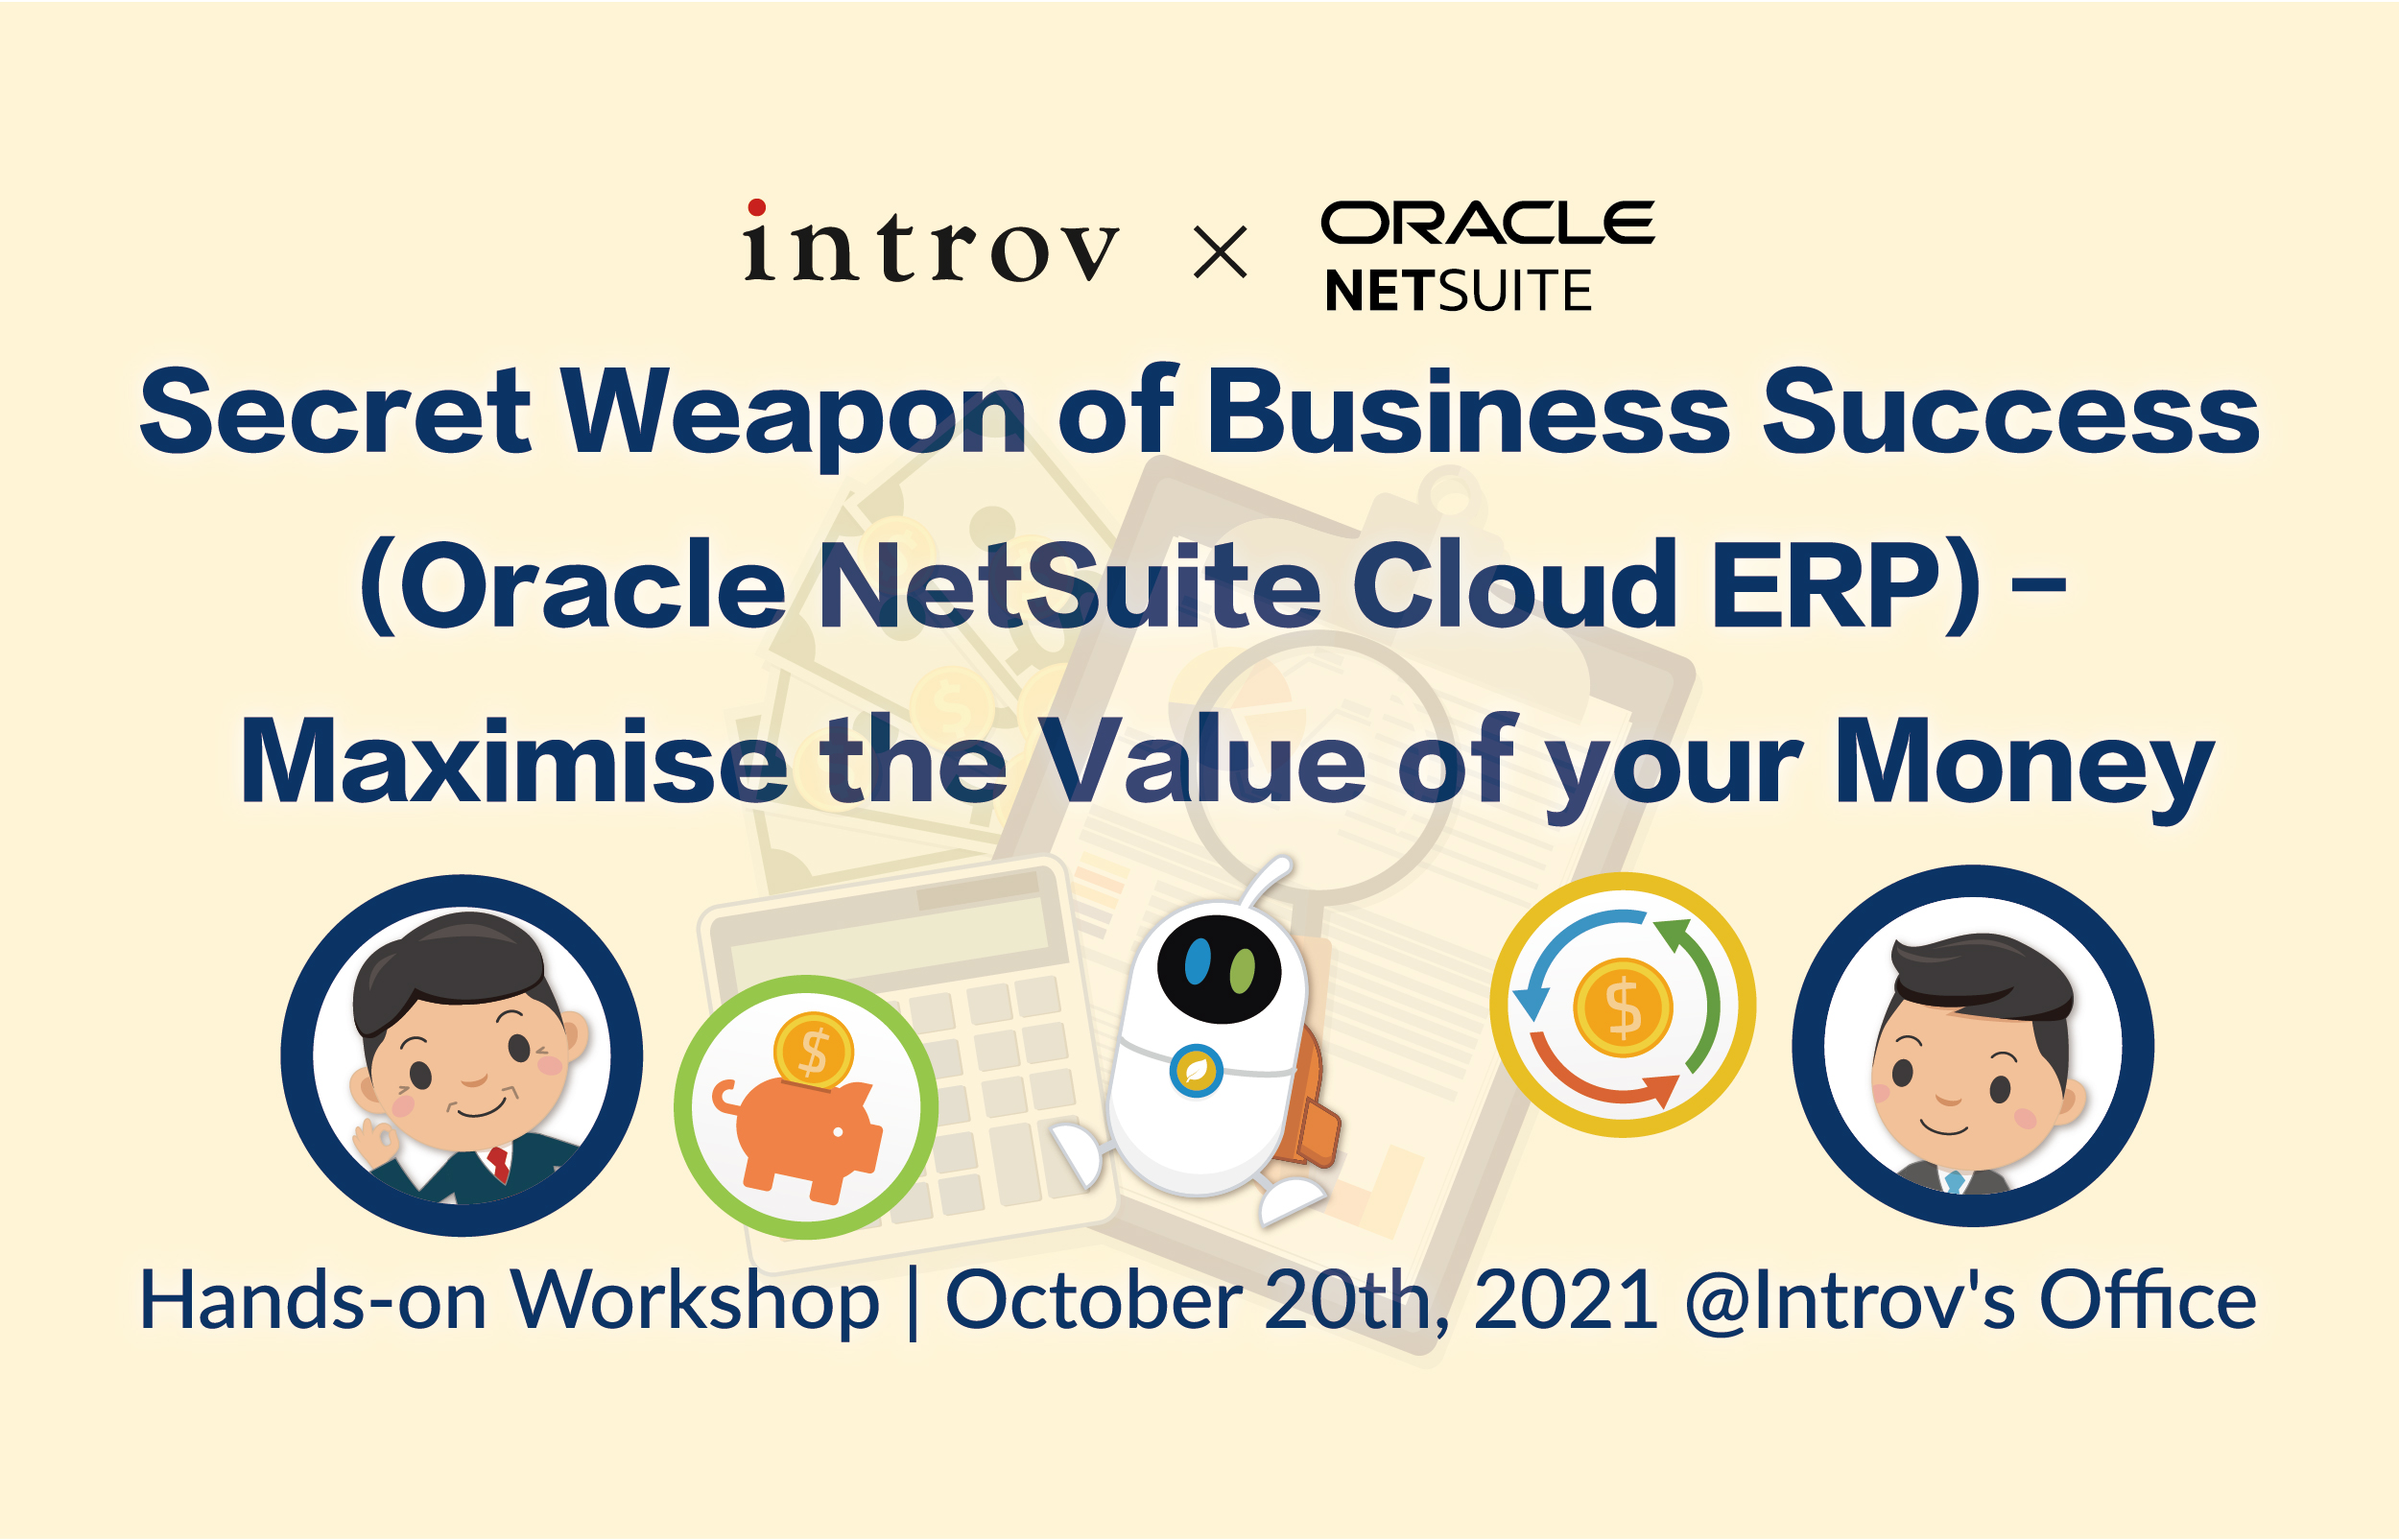 [Hands-on Workshop] Secret Weapon of Business Success (Oracle NetSuite Cloud ERP) – Maximise the Value of your Money (20 Oct, 2021)